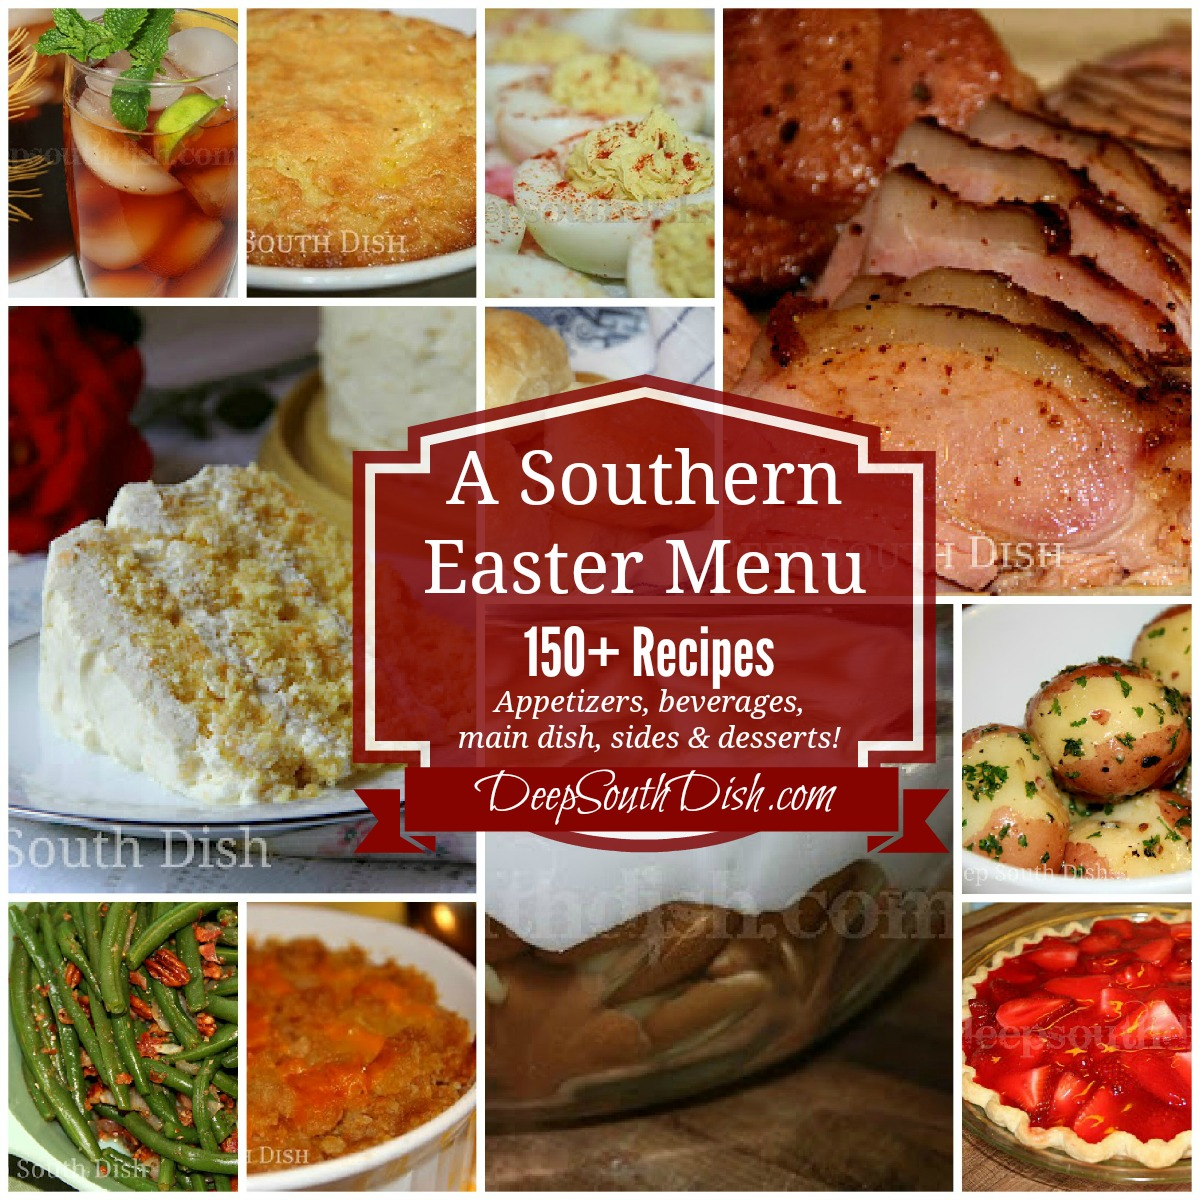 Deep south dish southern easter menu ideas and recipes a collection of southern easter menu ideas and recipes from deep south dish forumfinder Choice Image